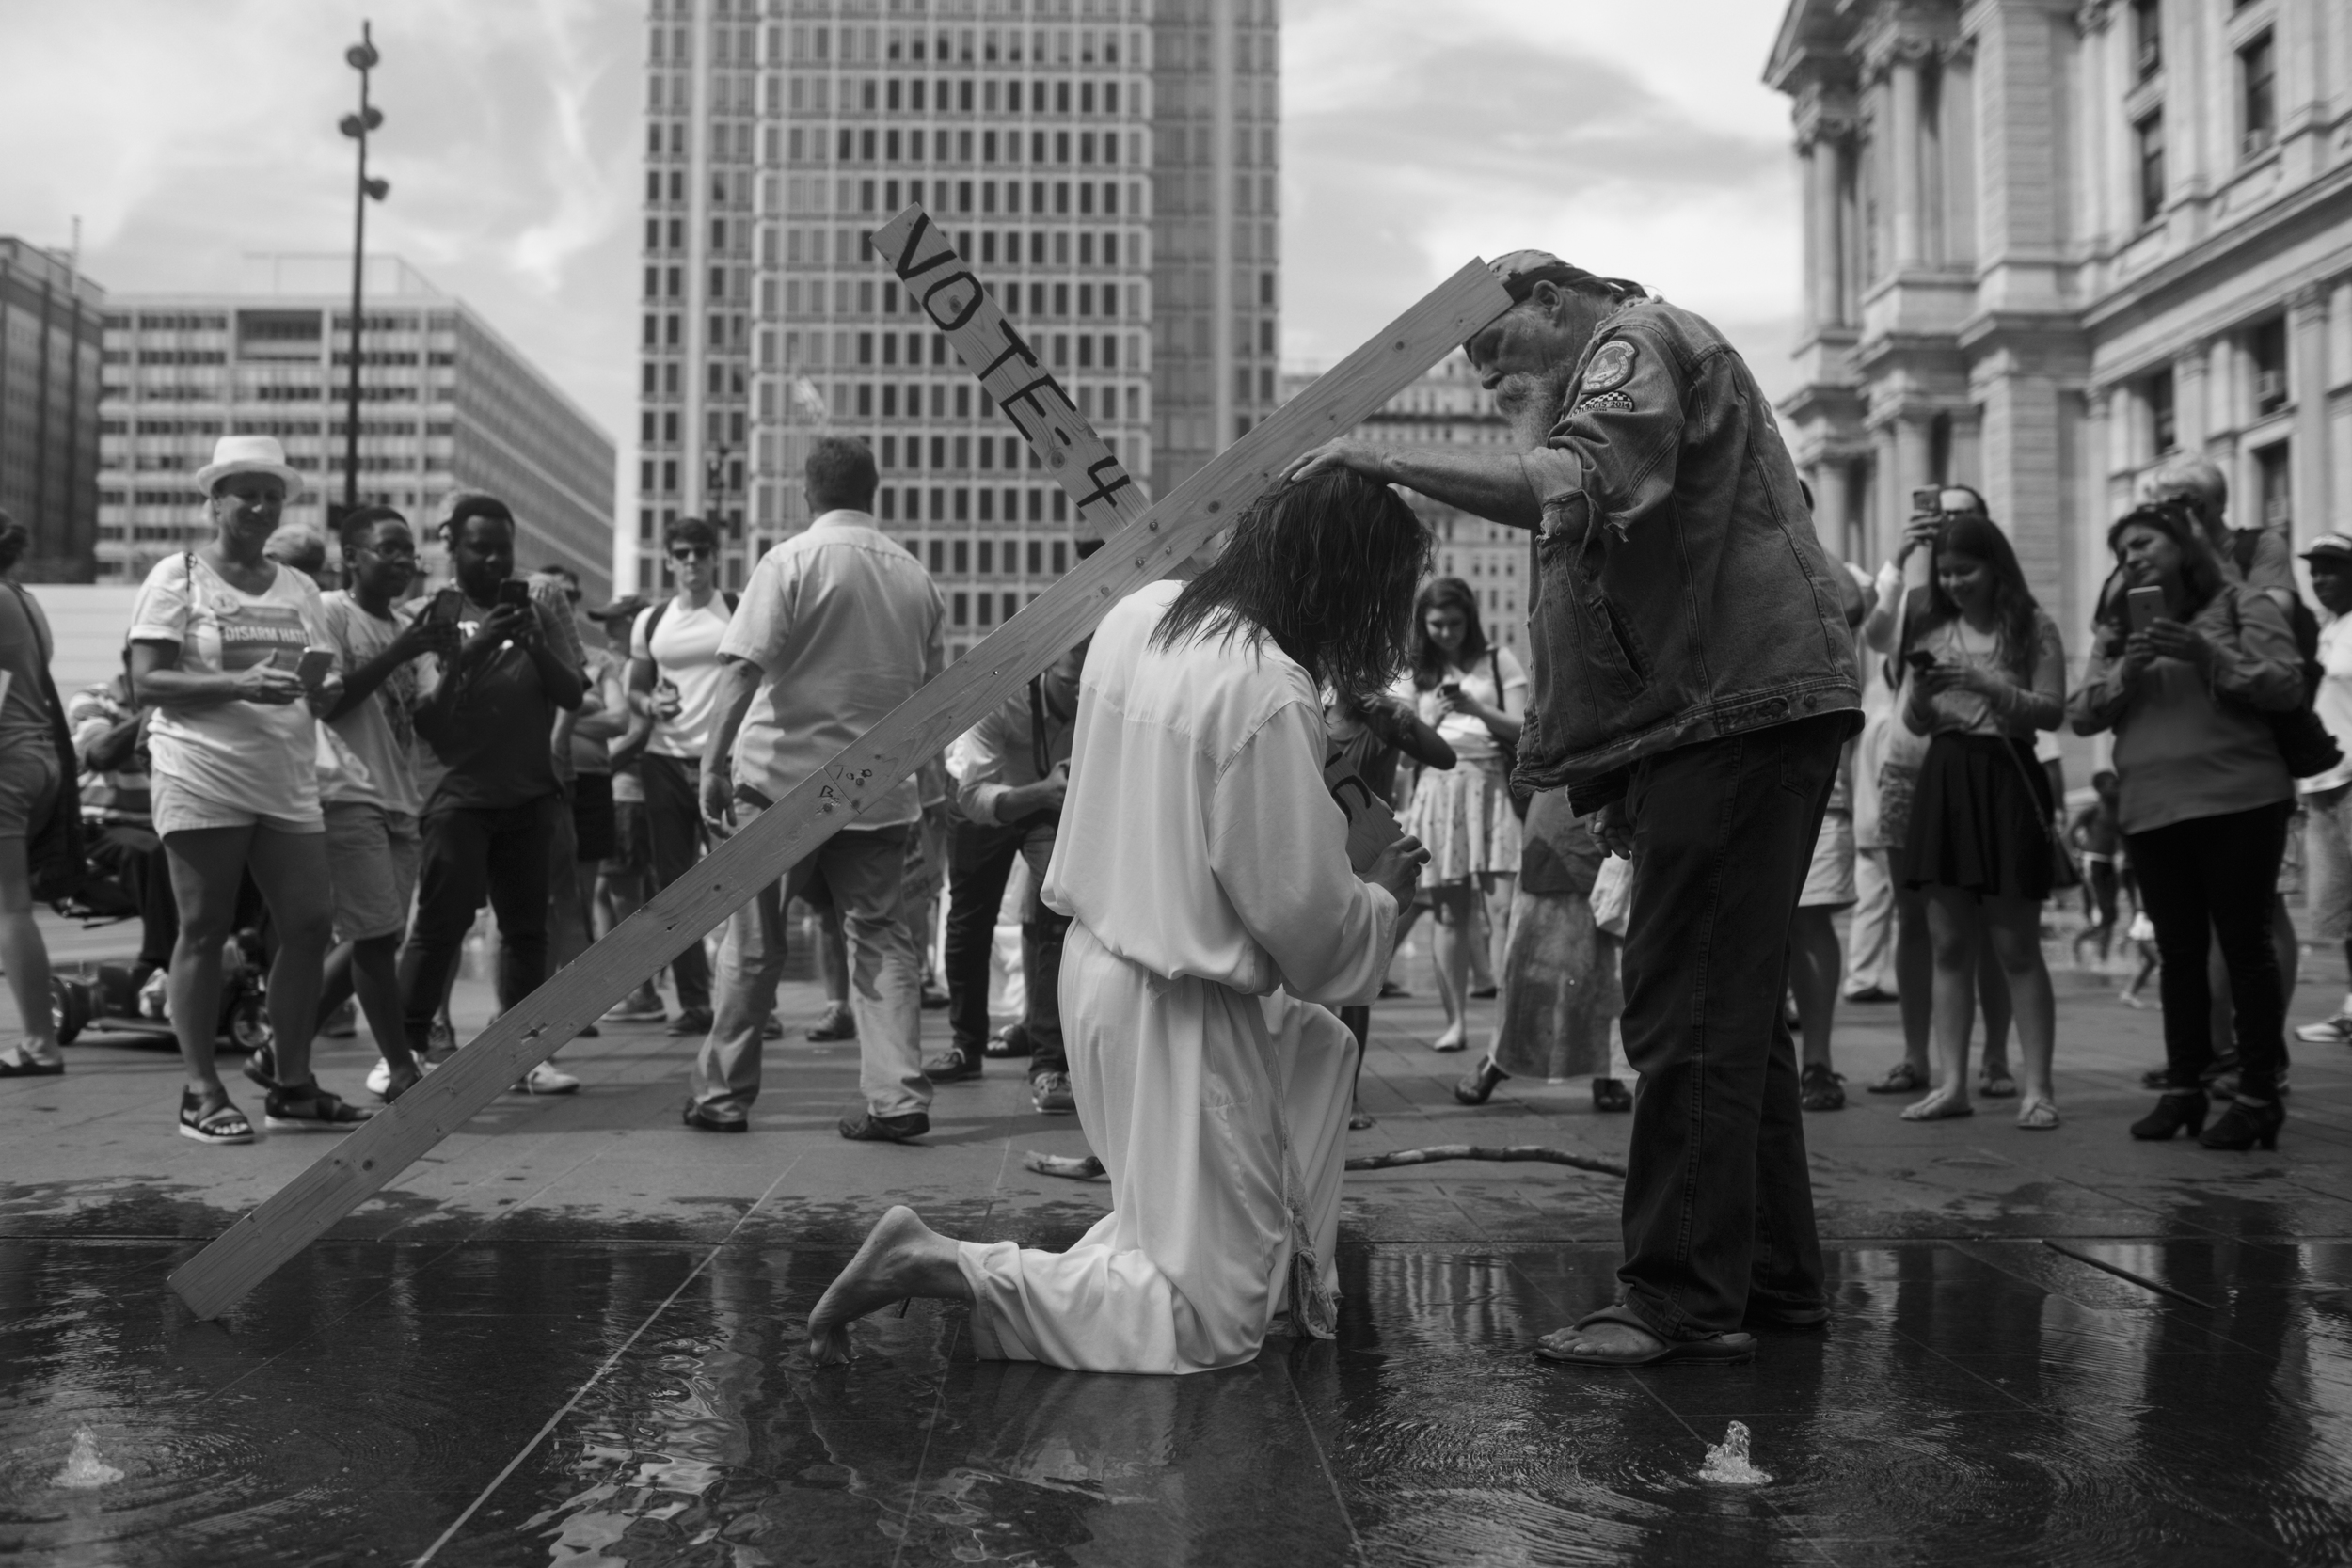 26 July 2016 - Philadelphia, PA - A man dressed up as Jesus interacts with Gary Mathes (r), who is carying around a cross during the Democratic National Convention.Photo: Cédric von Niederhäusern